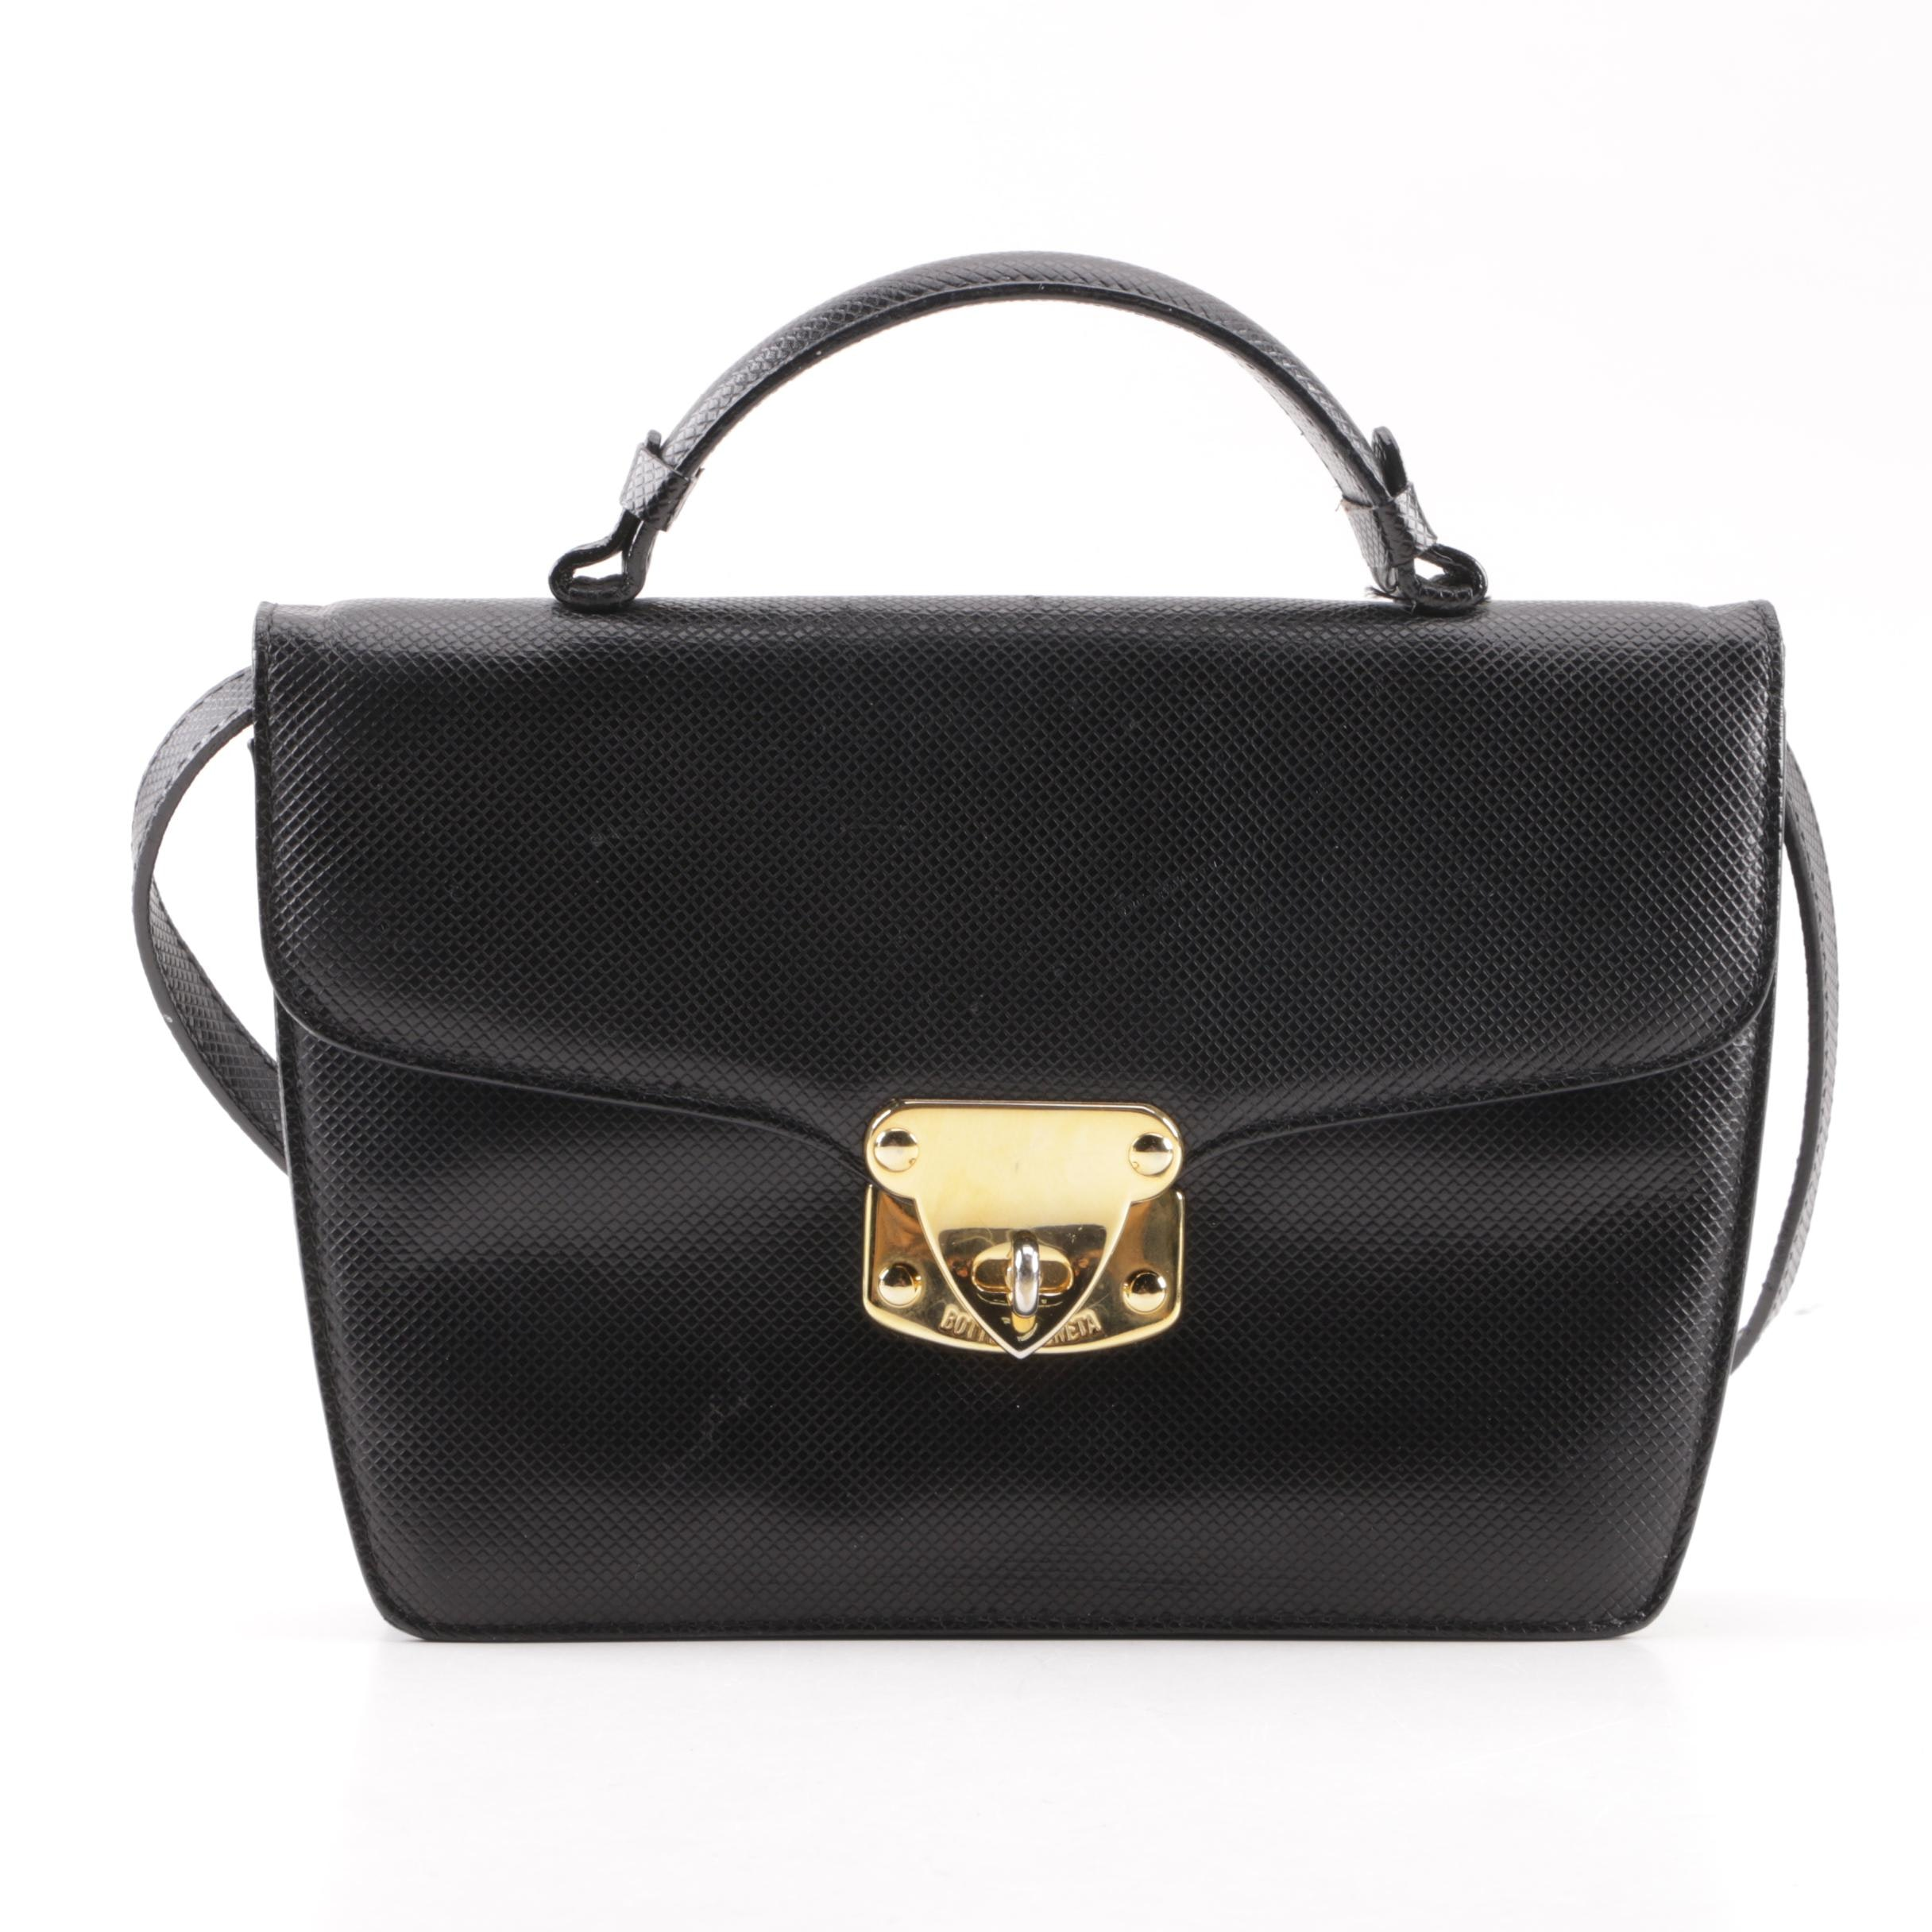 Bottega Veneta Embossed Black Leather Handbag